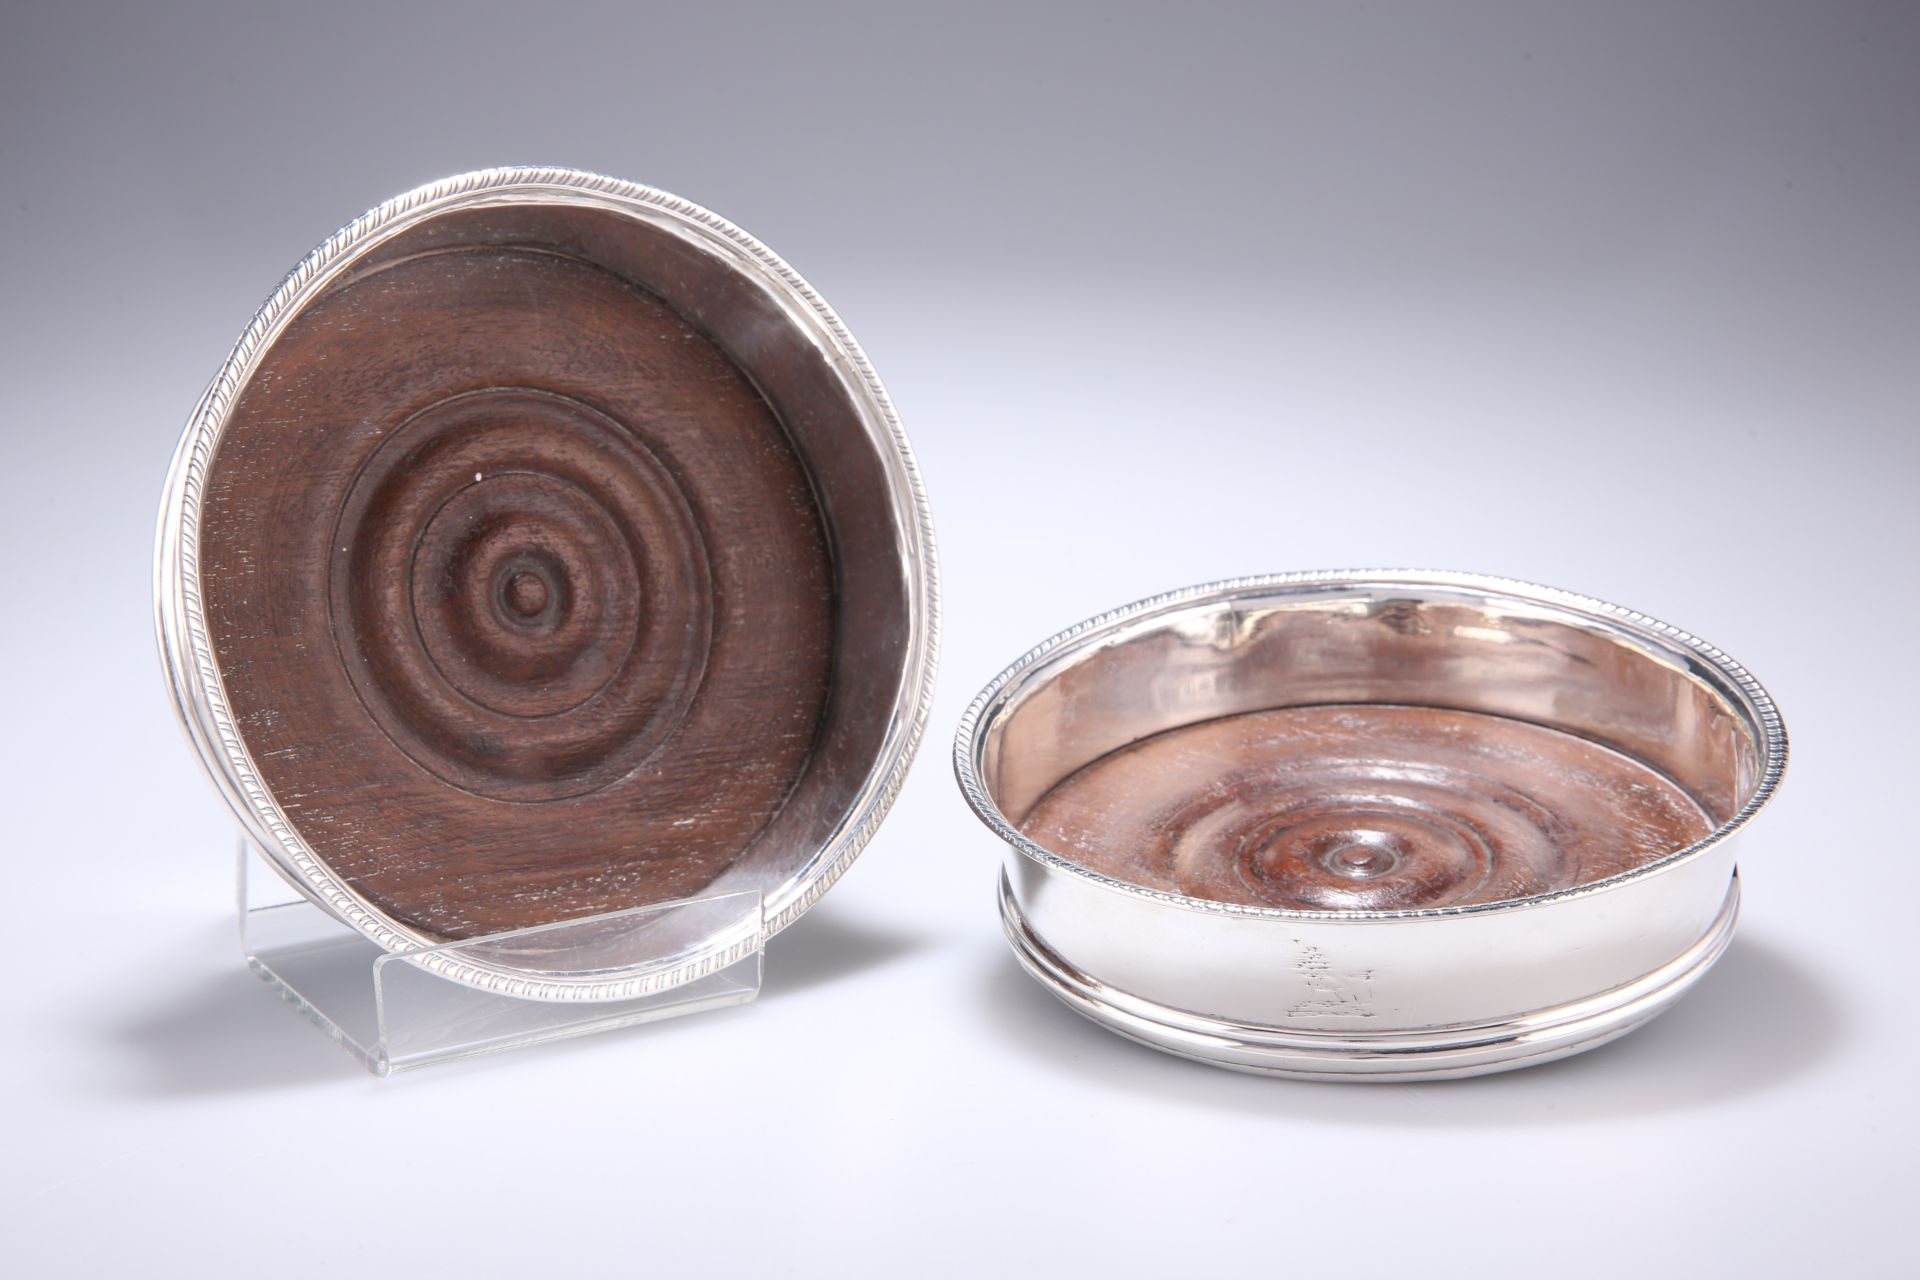 A PAIR OF GEORGE III SILVER COASTERS, marks rubbed, circular with gadrooned rim, each engraved